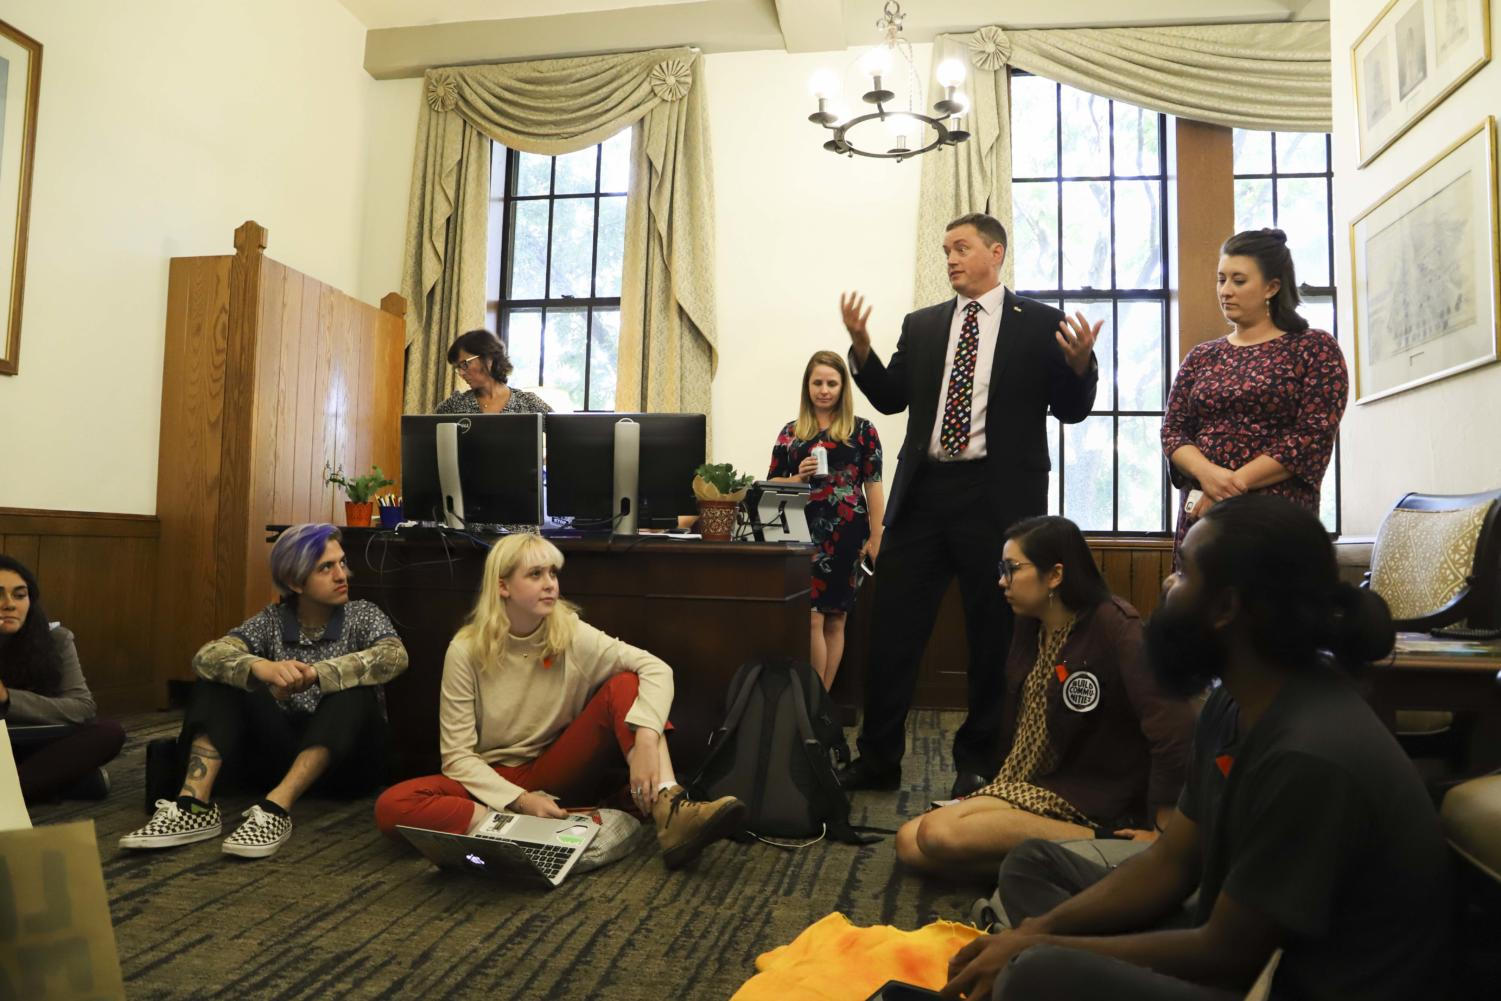 Associate Dean of Students Steve Anderson tells members of the Fossil Free Pitt Coalition that they cannot have a sit-in demonstration in the chancellor's office.